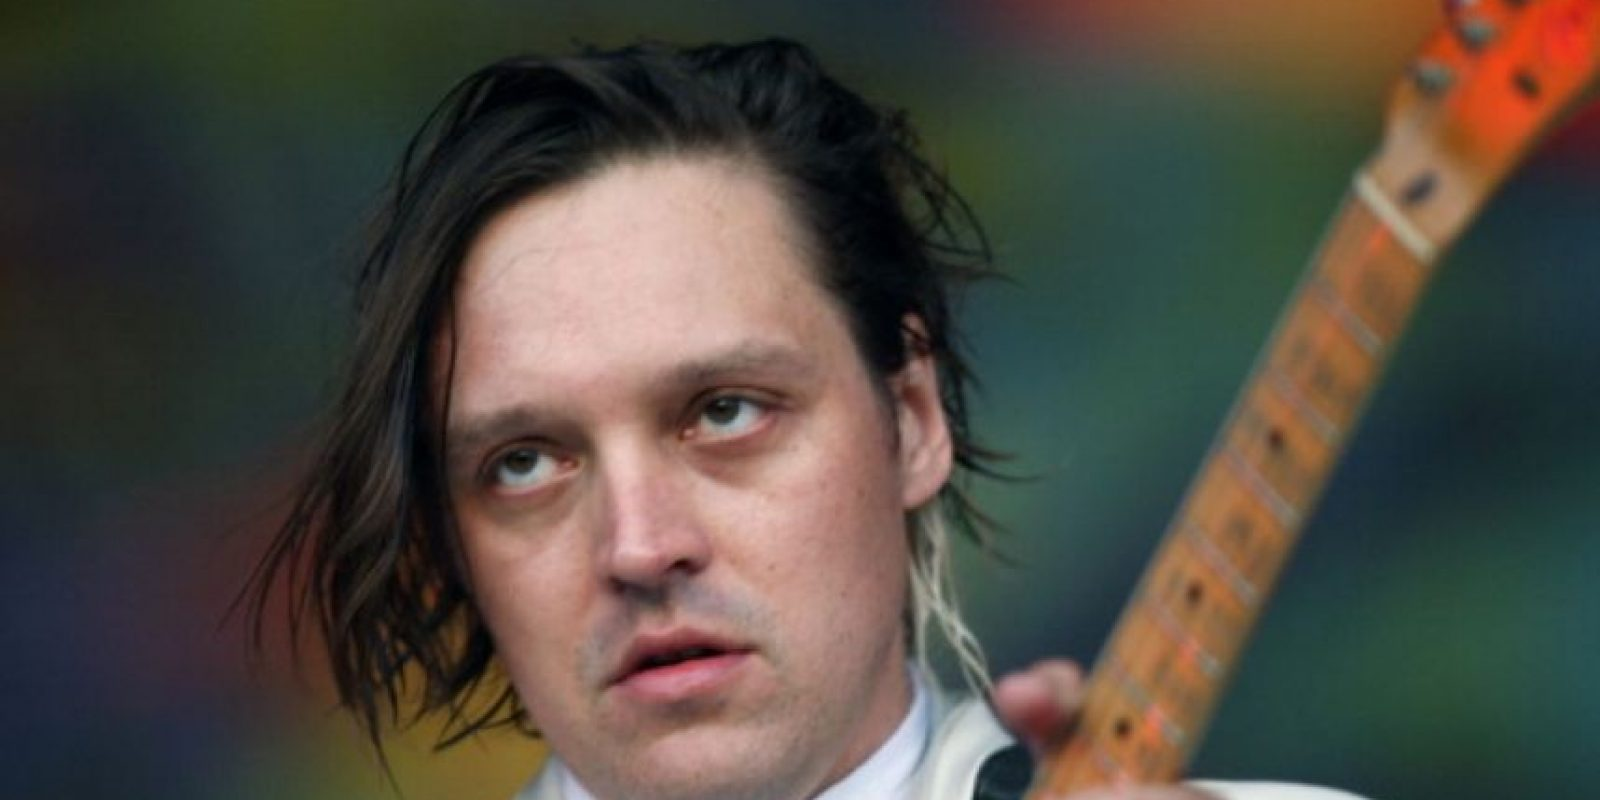 Win Butler, vocalista de la banda Arcade Fire Foto: Getty Images